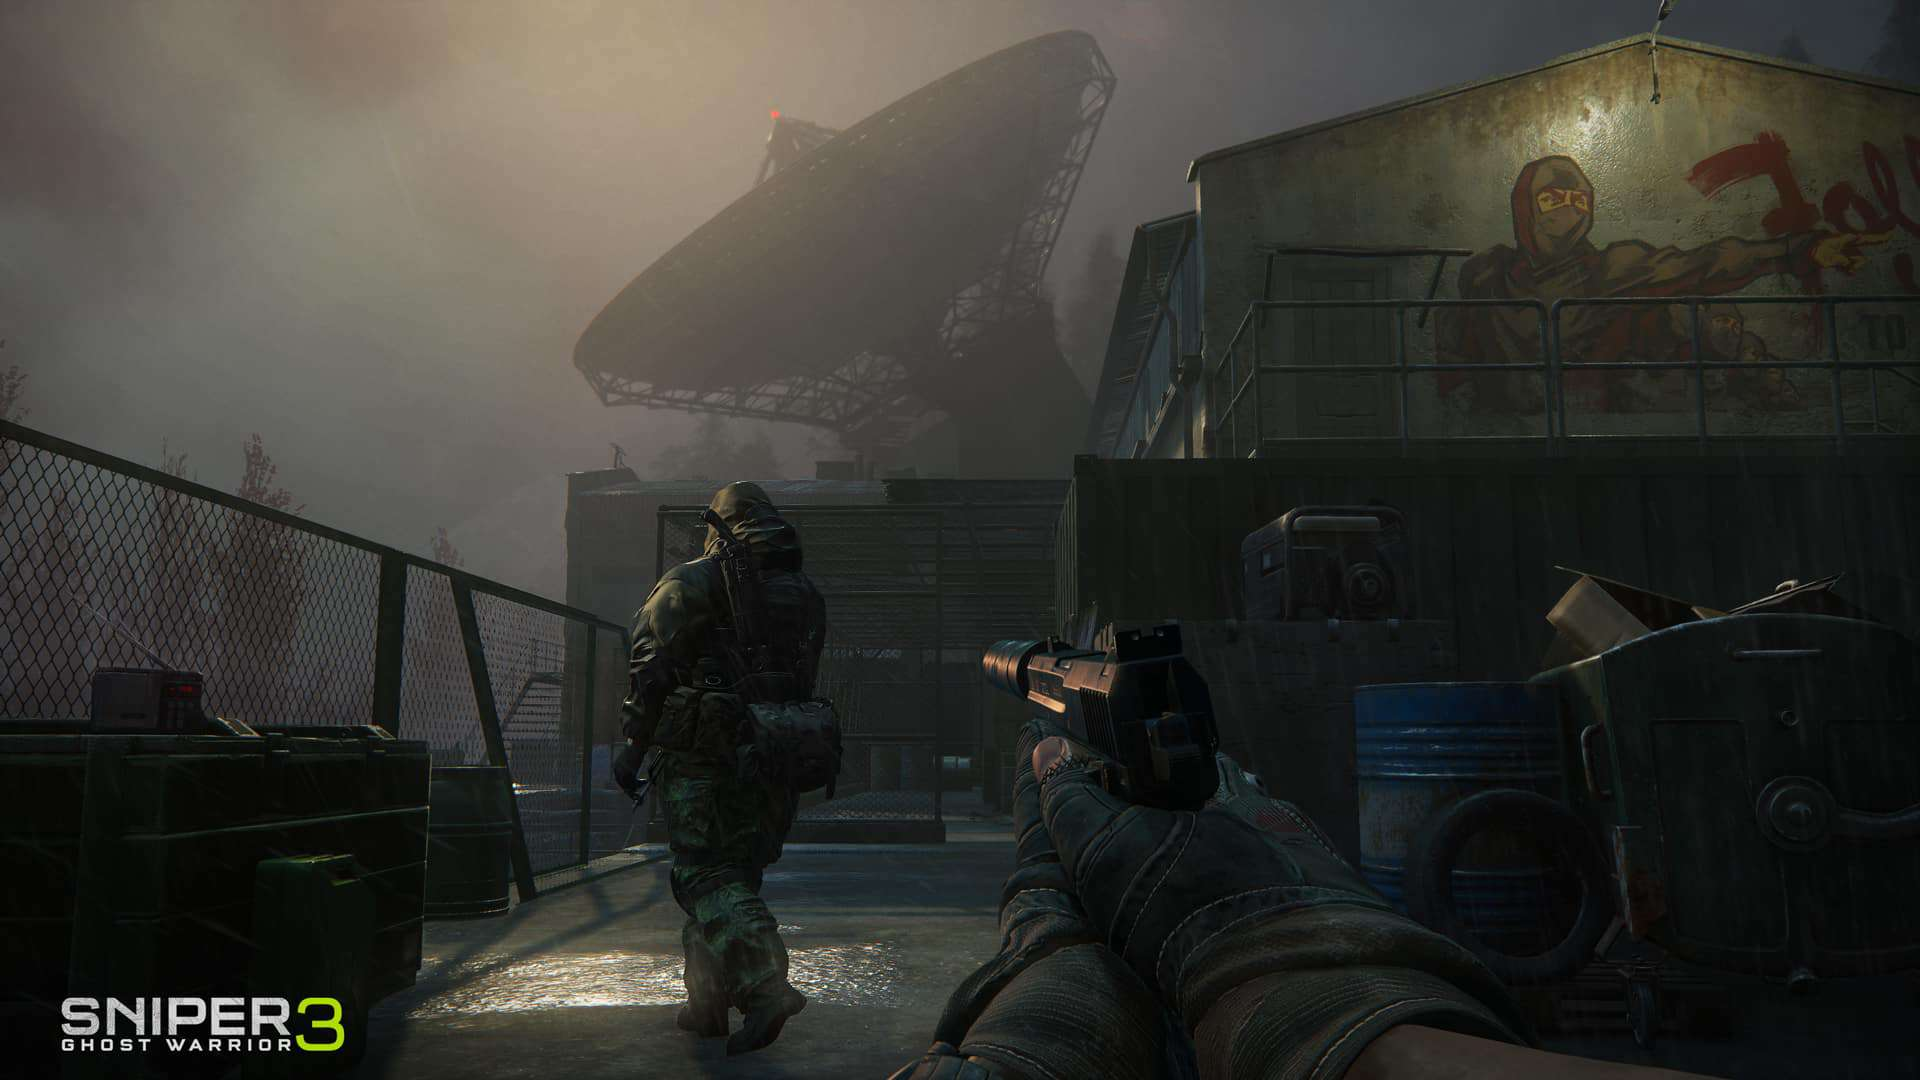 sniper ghost warrior keygen download free